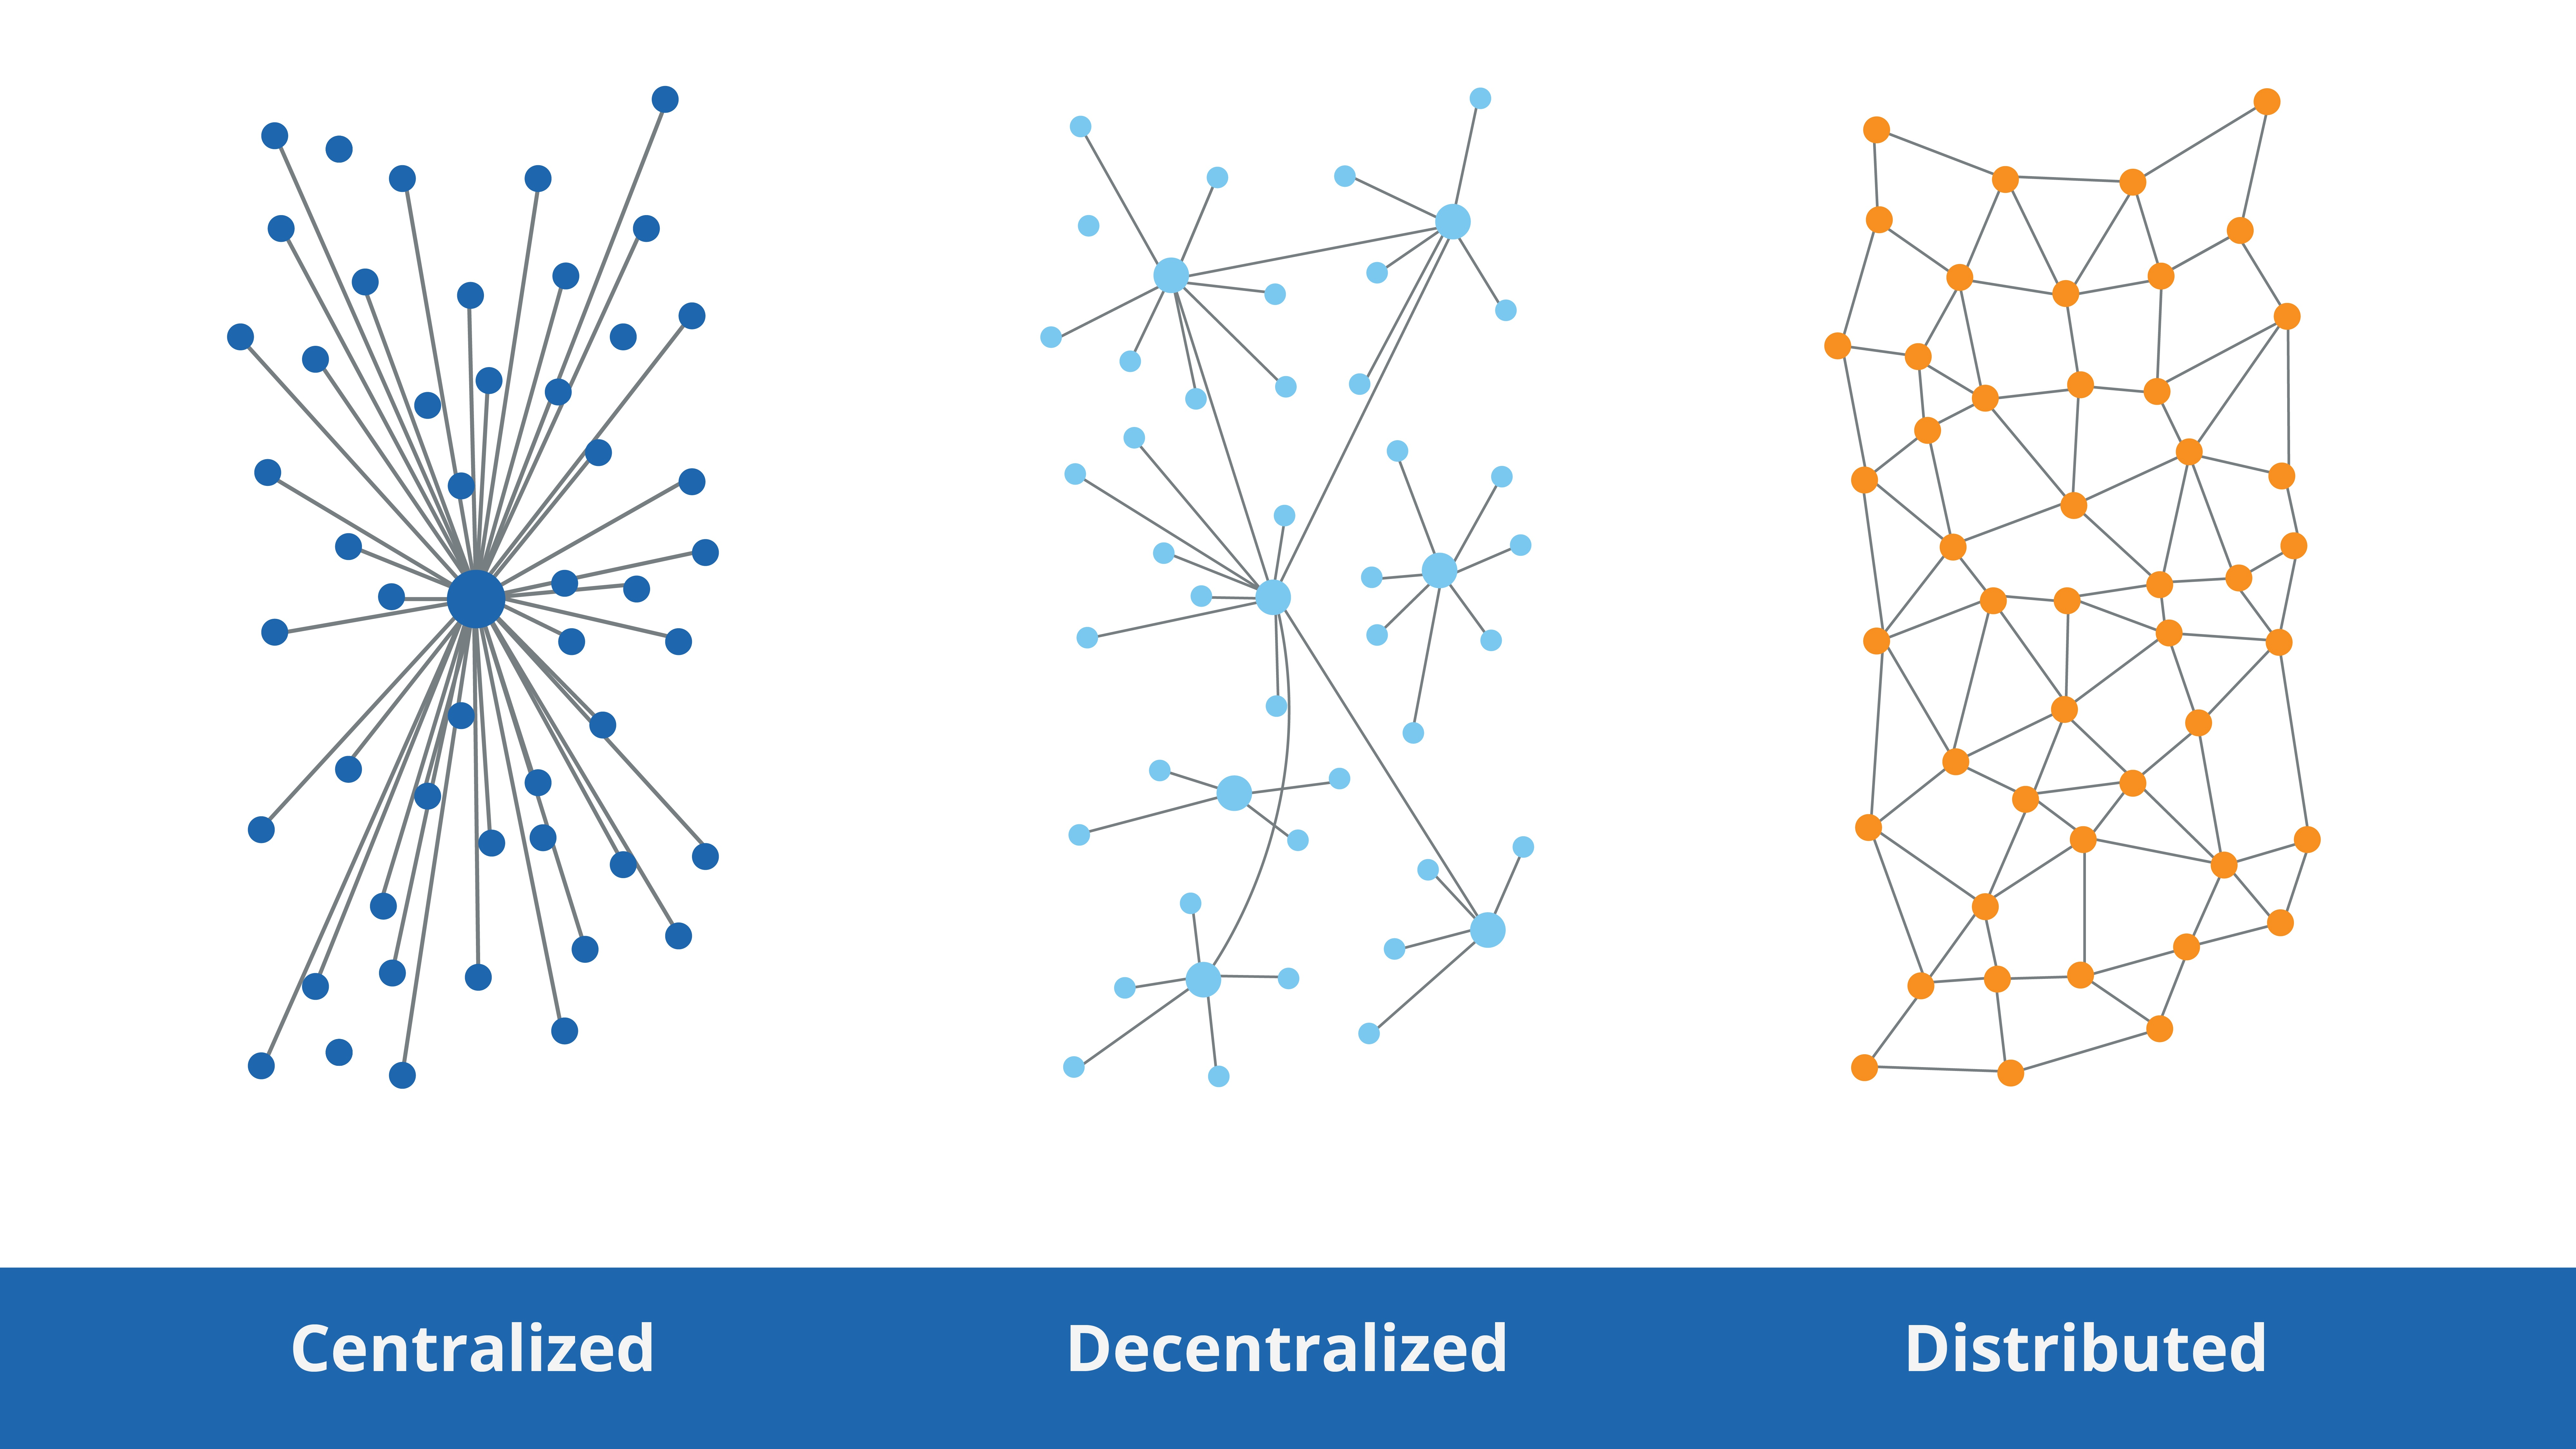 Difference of Centralized, Decentralized and Distributed